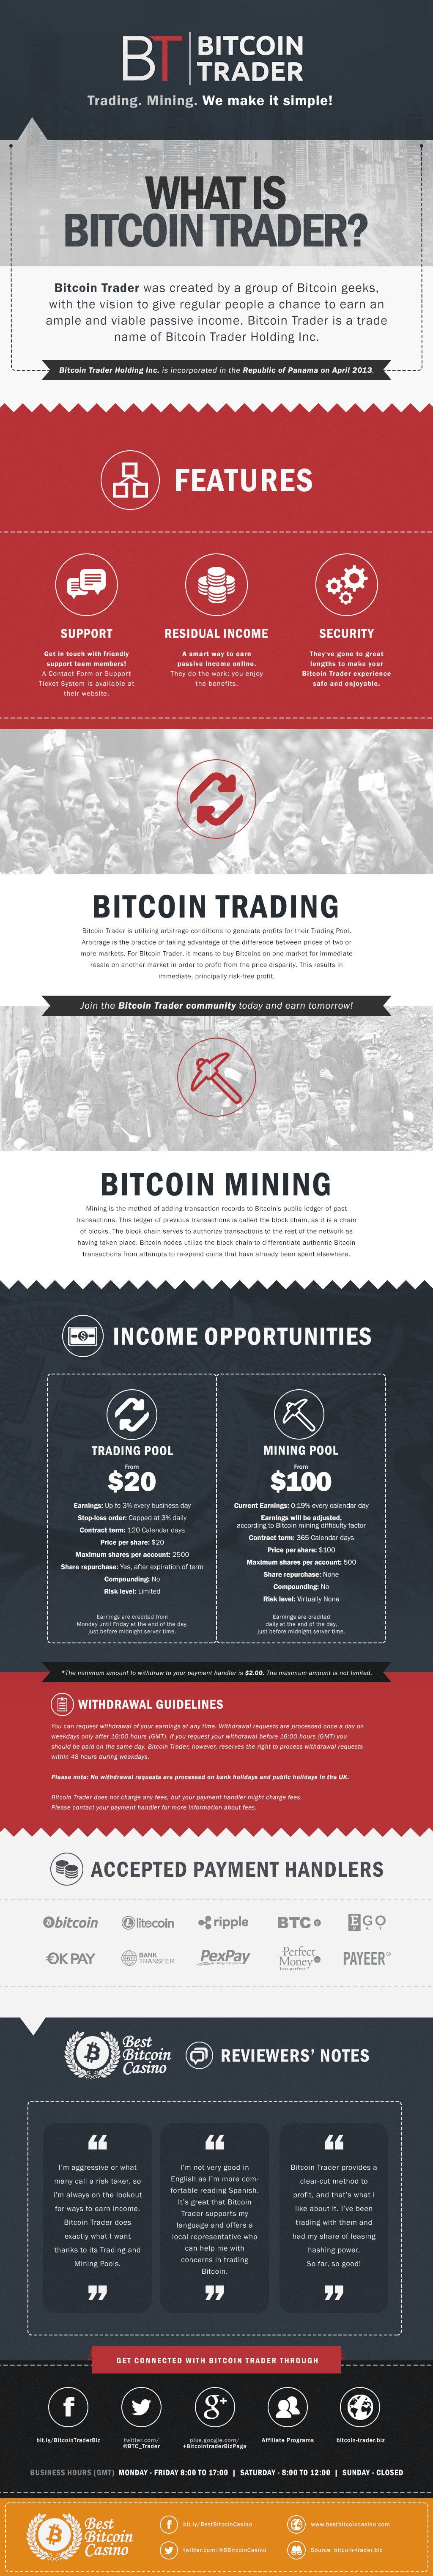 Bitcoin Trader Infographic